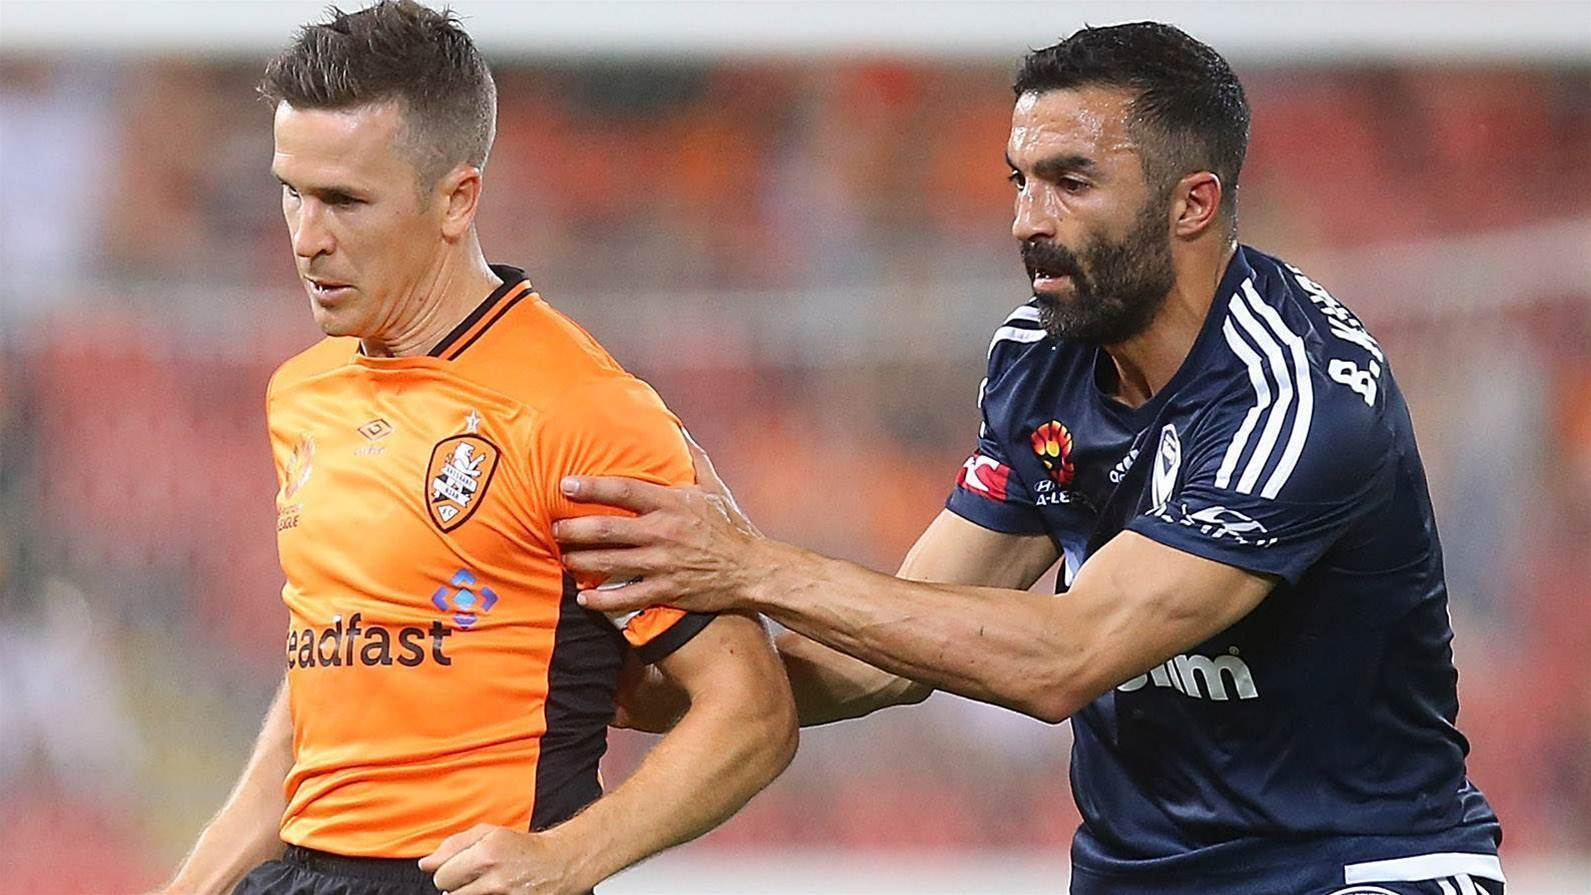 The top 12 skippers in A-League history